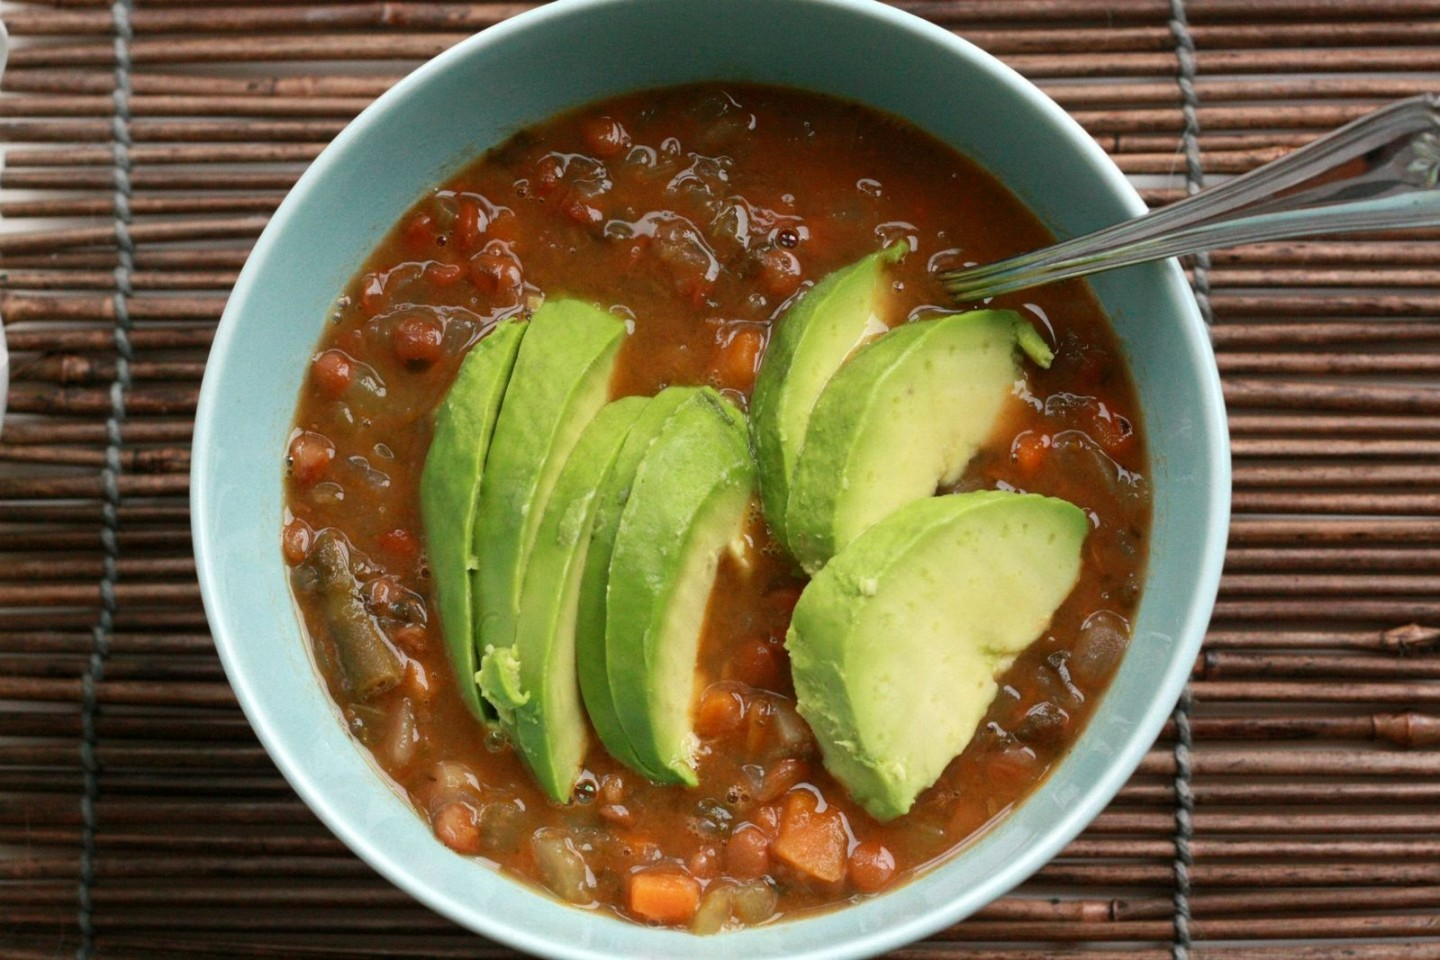 Lentil_and_vegetable_soup_with_avocado_(6964882187)